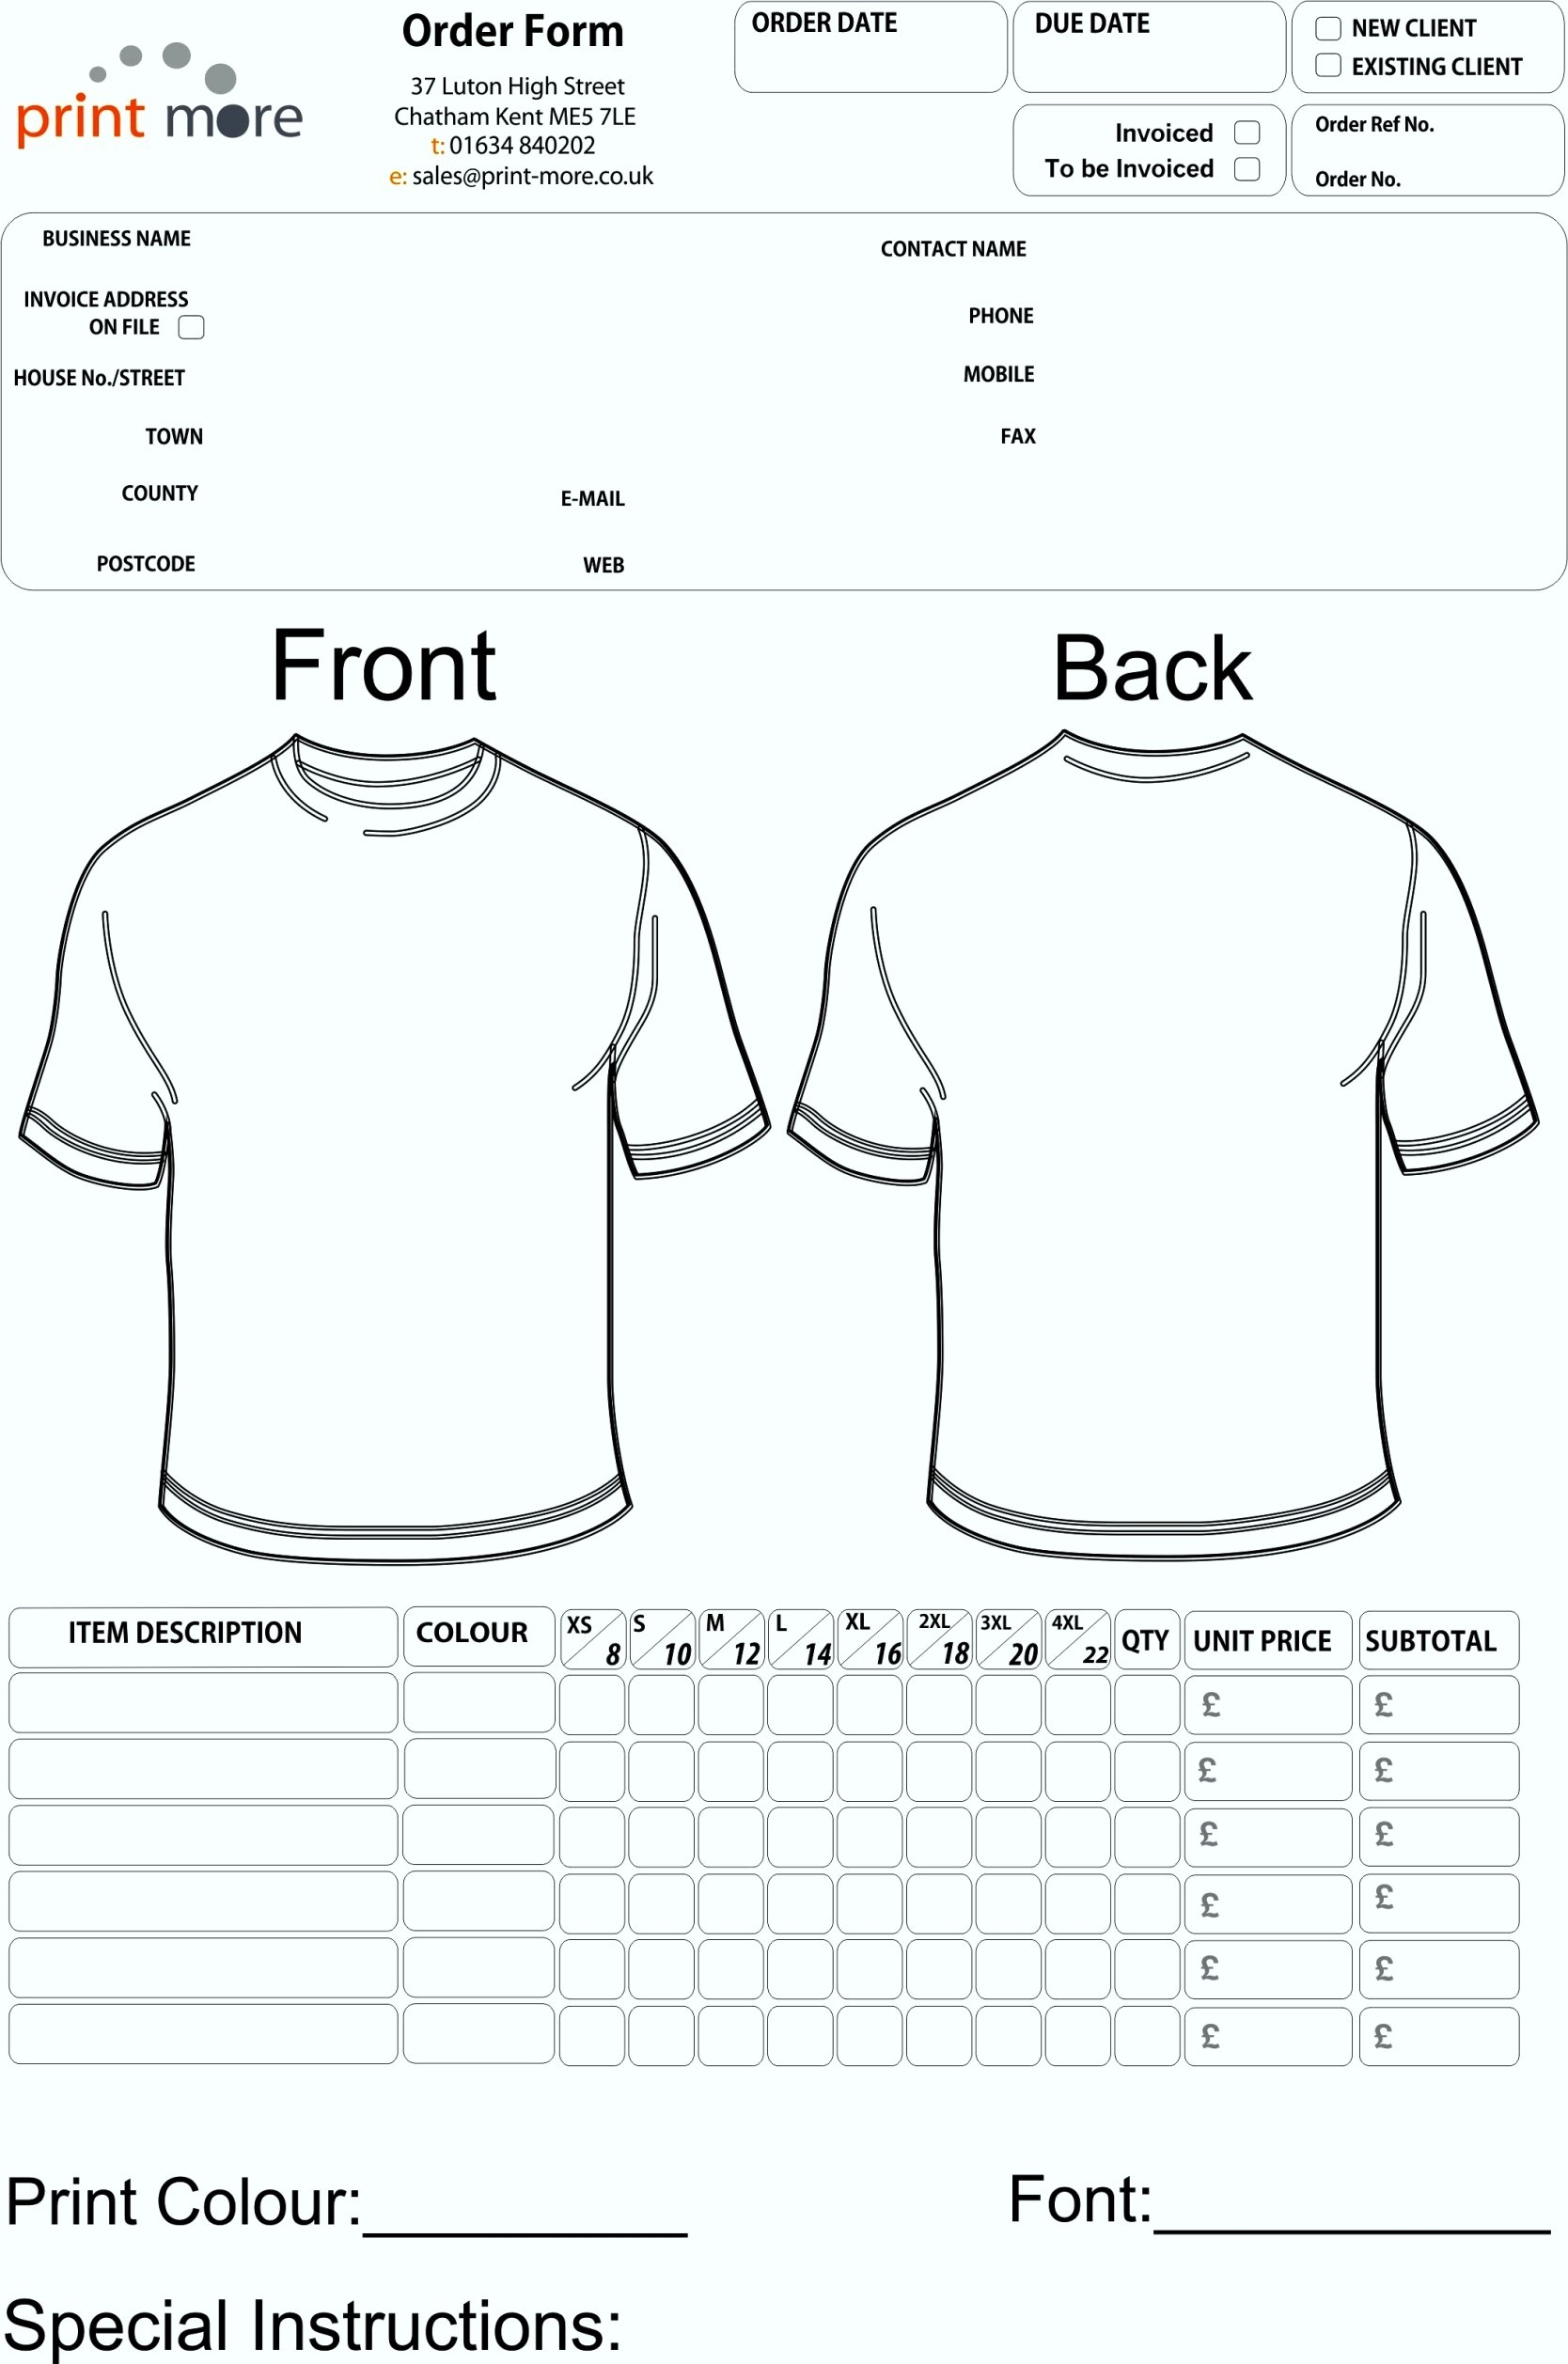 9 Printable Order Form Template | Pay Stub Free Templates Image - Free Printable Order Forms